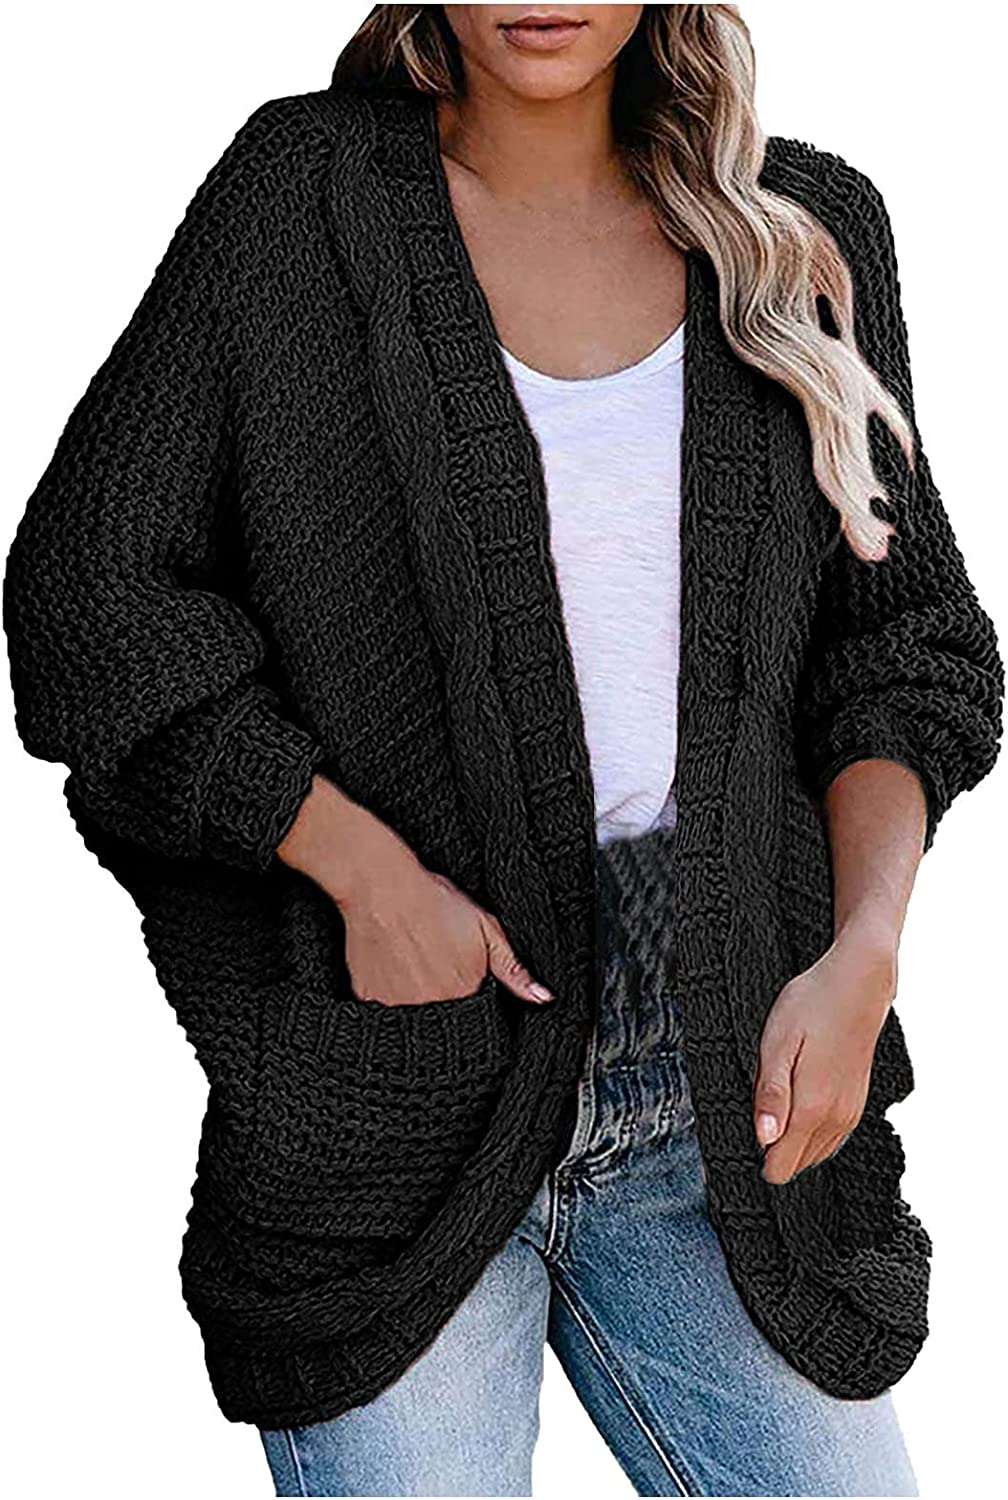 Women's Winter Long Sleeve Open Front Sweater Solid Color Cable Knitting Cardigan with Pocket